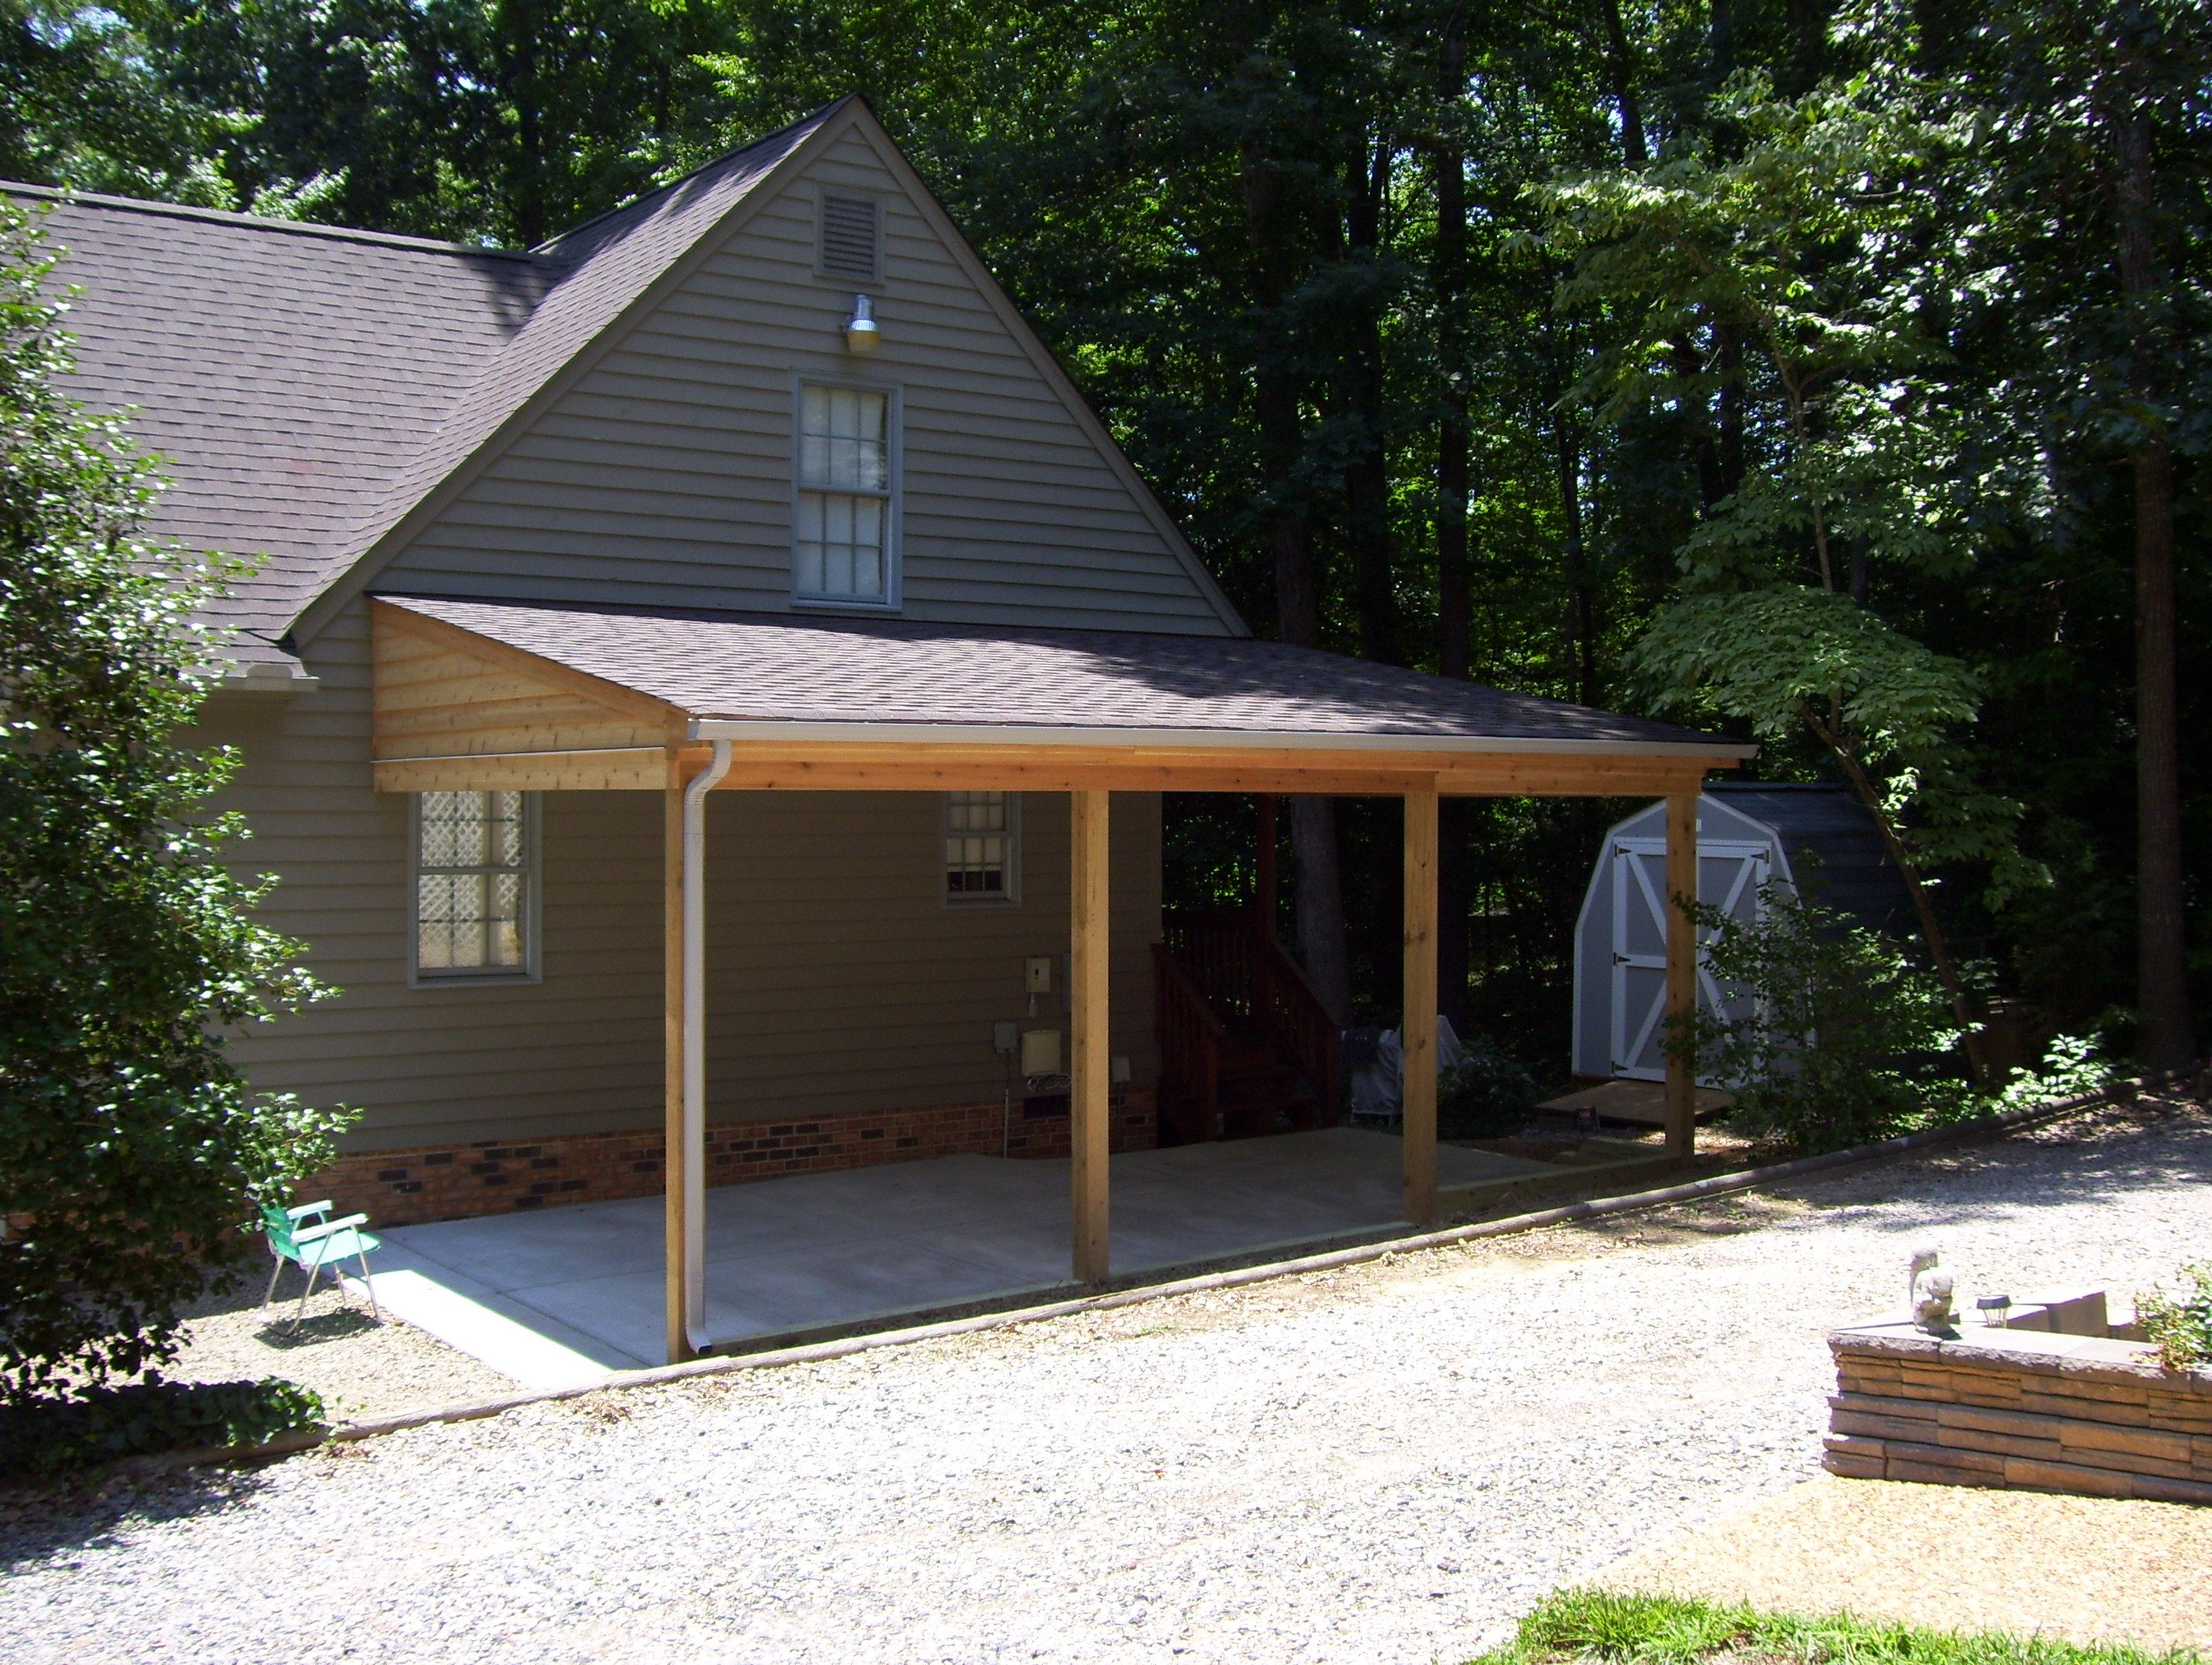 attached carports | Attached Carport Designs | Carport ideas ... on home attached carports, home covered parking ideas, home storage ideas, home garage ideas, home shed ideas, home shop ideas, home chimney ideas, home awning ideas, home fireplace ideas, home driveway ideas, home tennis court ideas, home gazebo ideas, home portico ideas, home depot carport kits, home bbq ideas, home loft ideas, home roof ideas, home pantry ideas, home heating ideas, home elevator ideas,